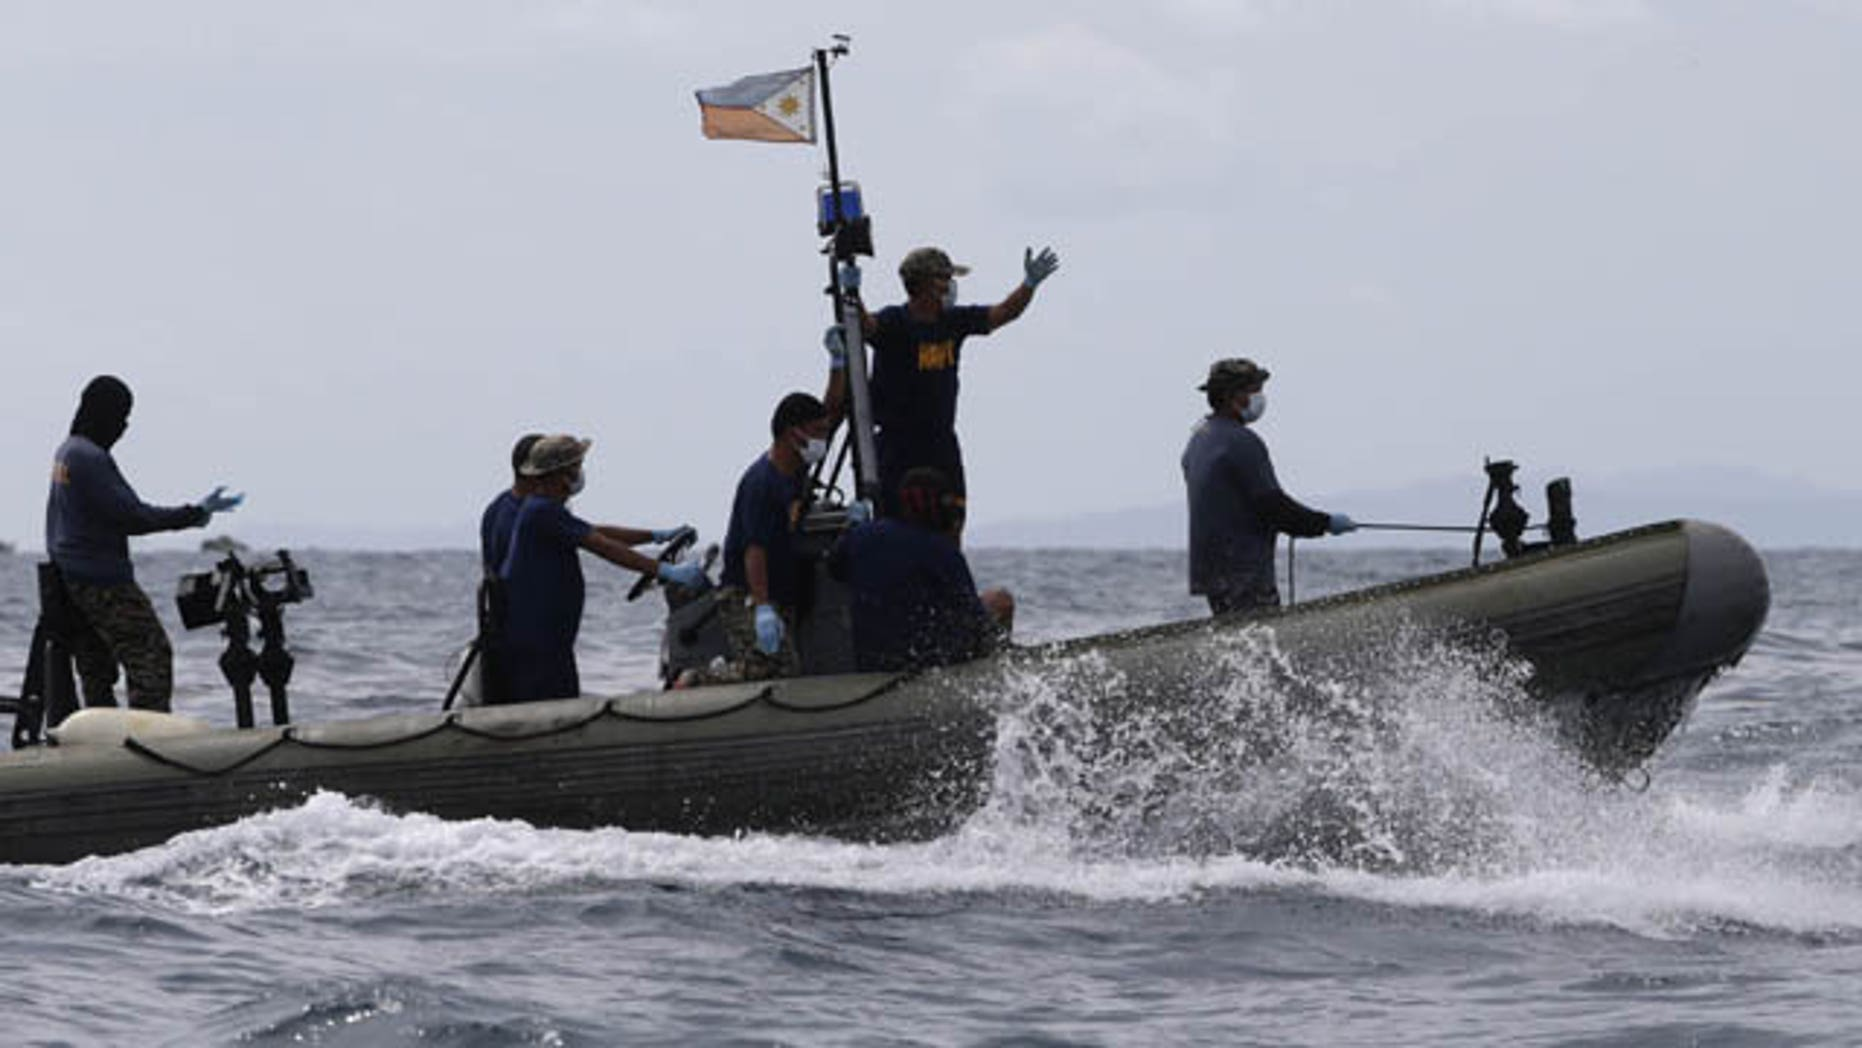 August 18, 2013: Philippine Navy and Coast Guard divers continue their search and rescue operation off Talisay coast, Cebu province following Friday night's collision of the passenger ferry MV Thomas Aquinas and the cargo ship MV Sulpicio Express Siete in central Philippines.